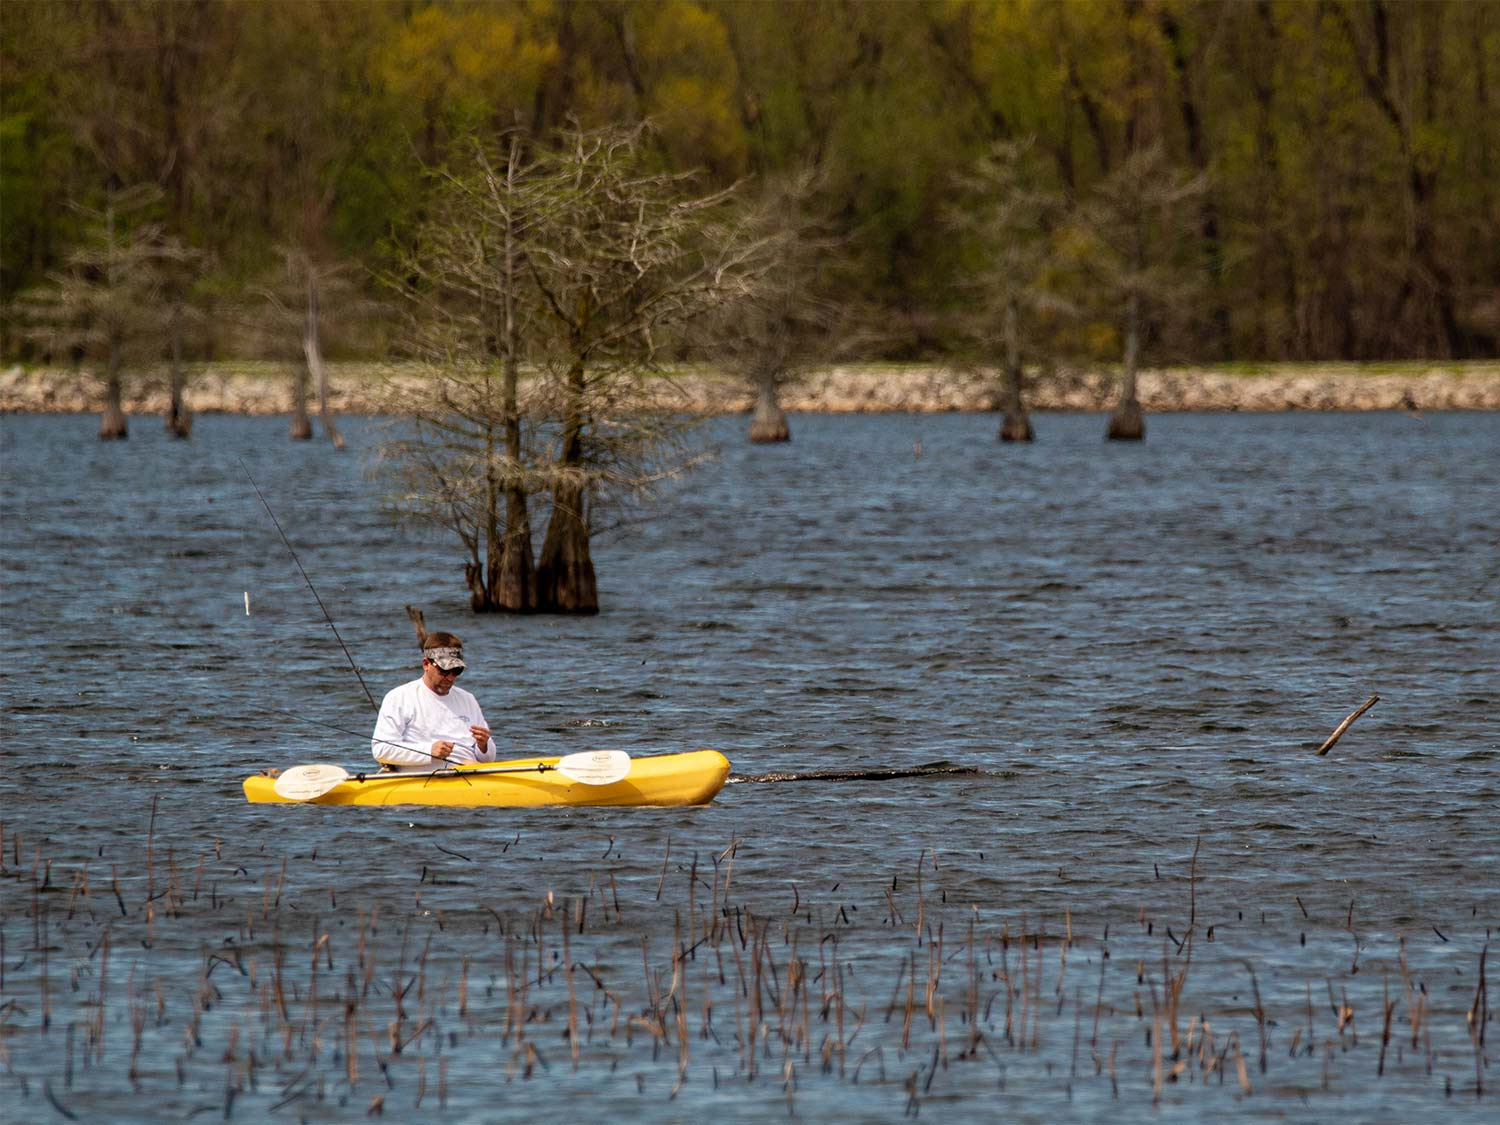 A man rides in a kayak across a lake using the best fishing motor.